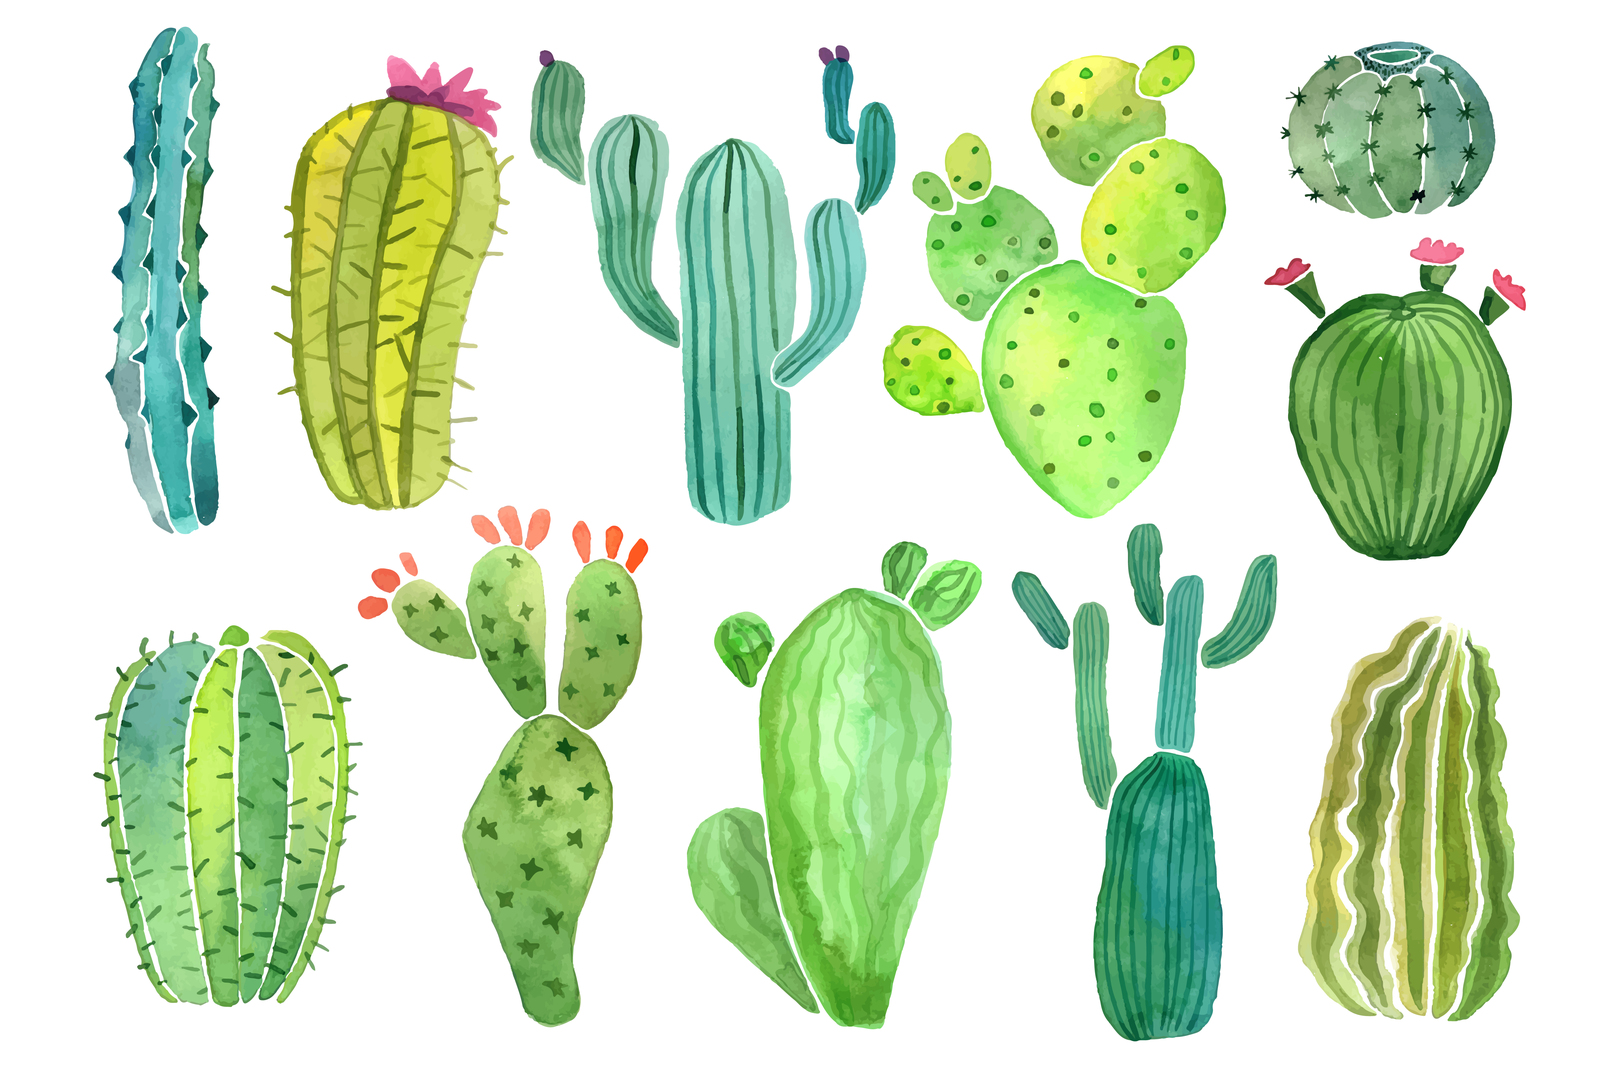 Watercolor cactus and succulent set in Illustrations on.